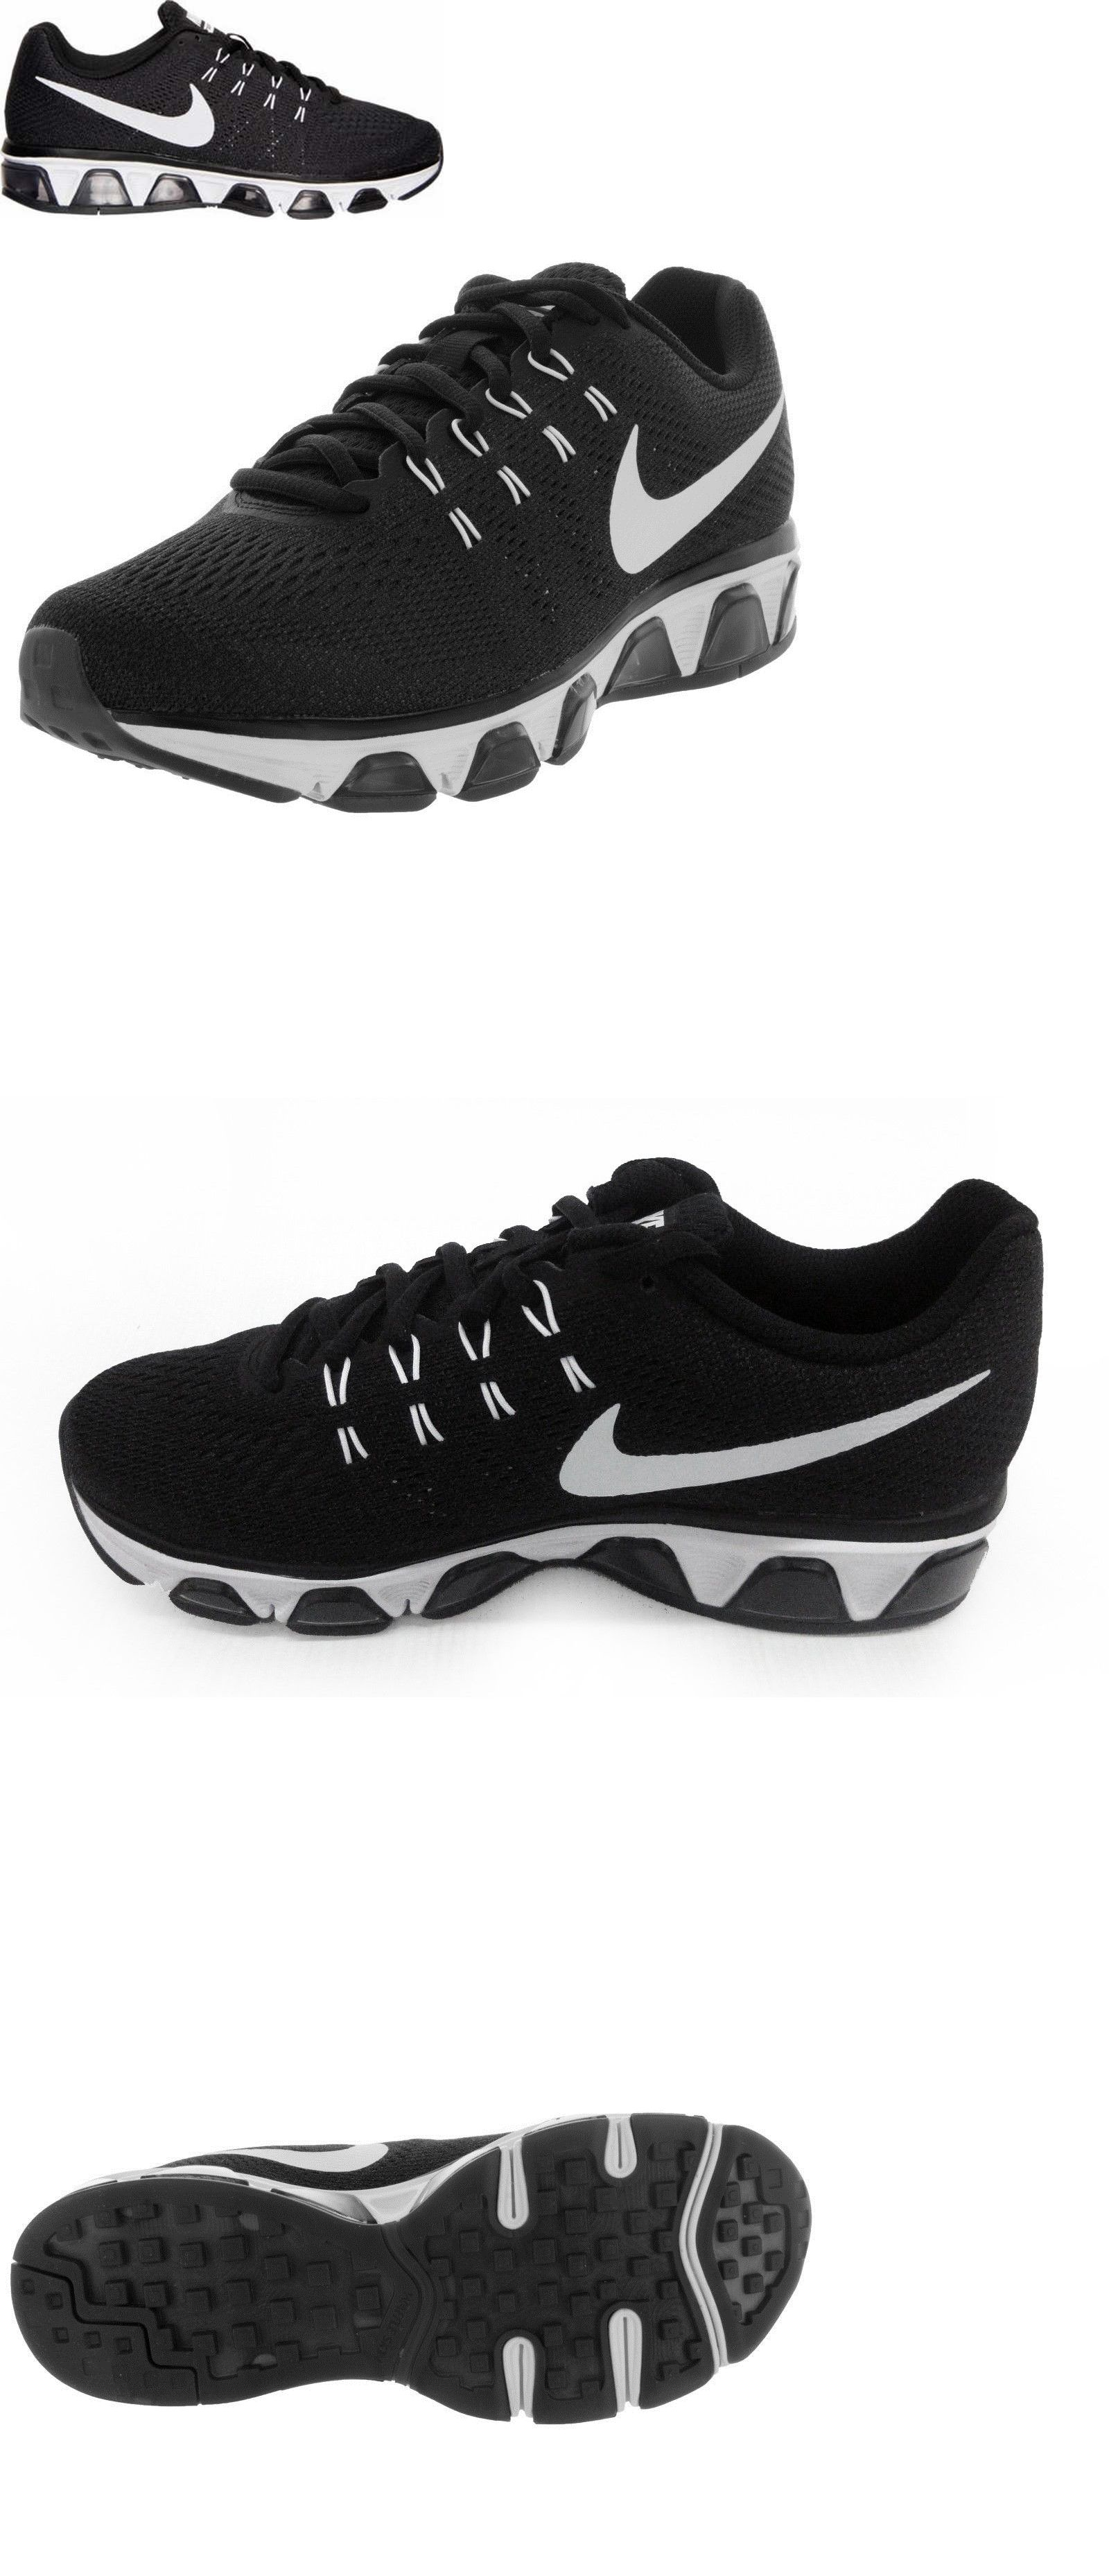 Athletic 95672: Nike Air Max Tailwind 8 Womens Running Shoes Size Black White Fashion 805942 001 -> BUY IT NOW ONLY: $64.96 on eBay!